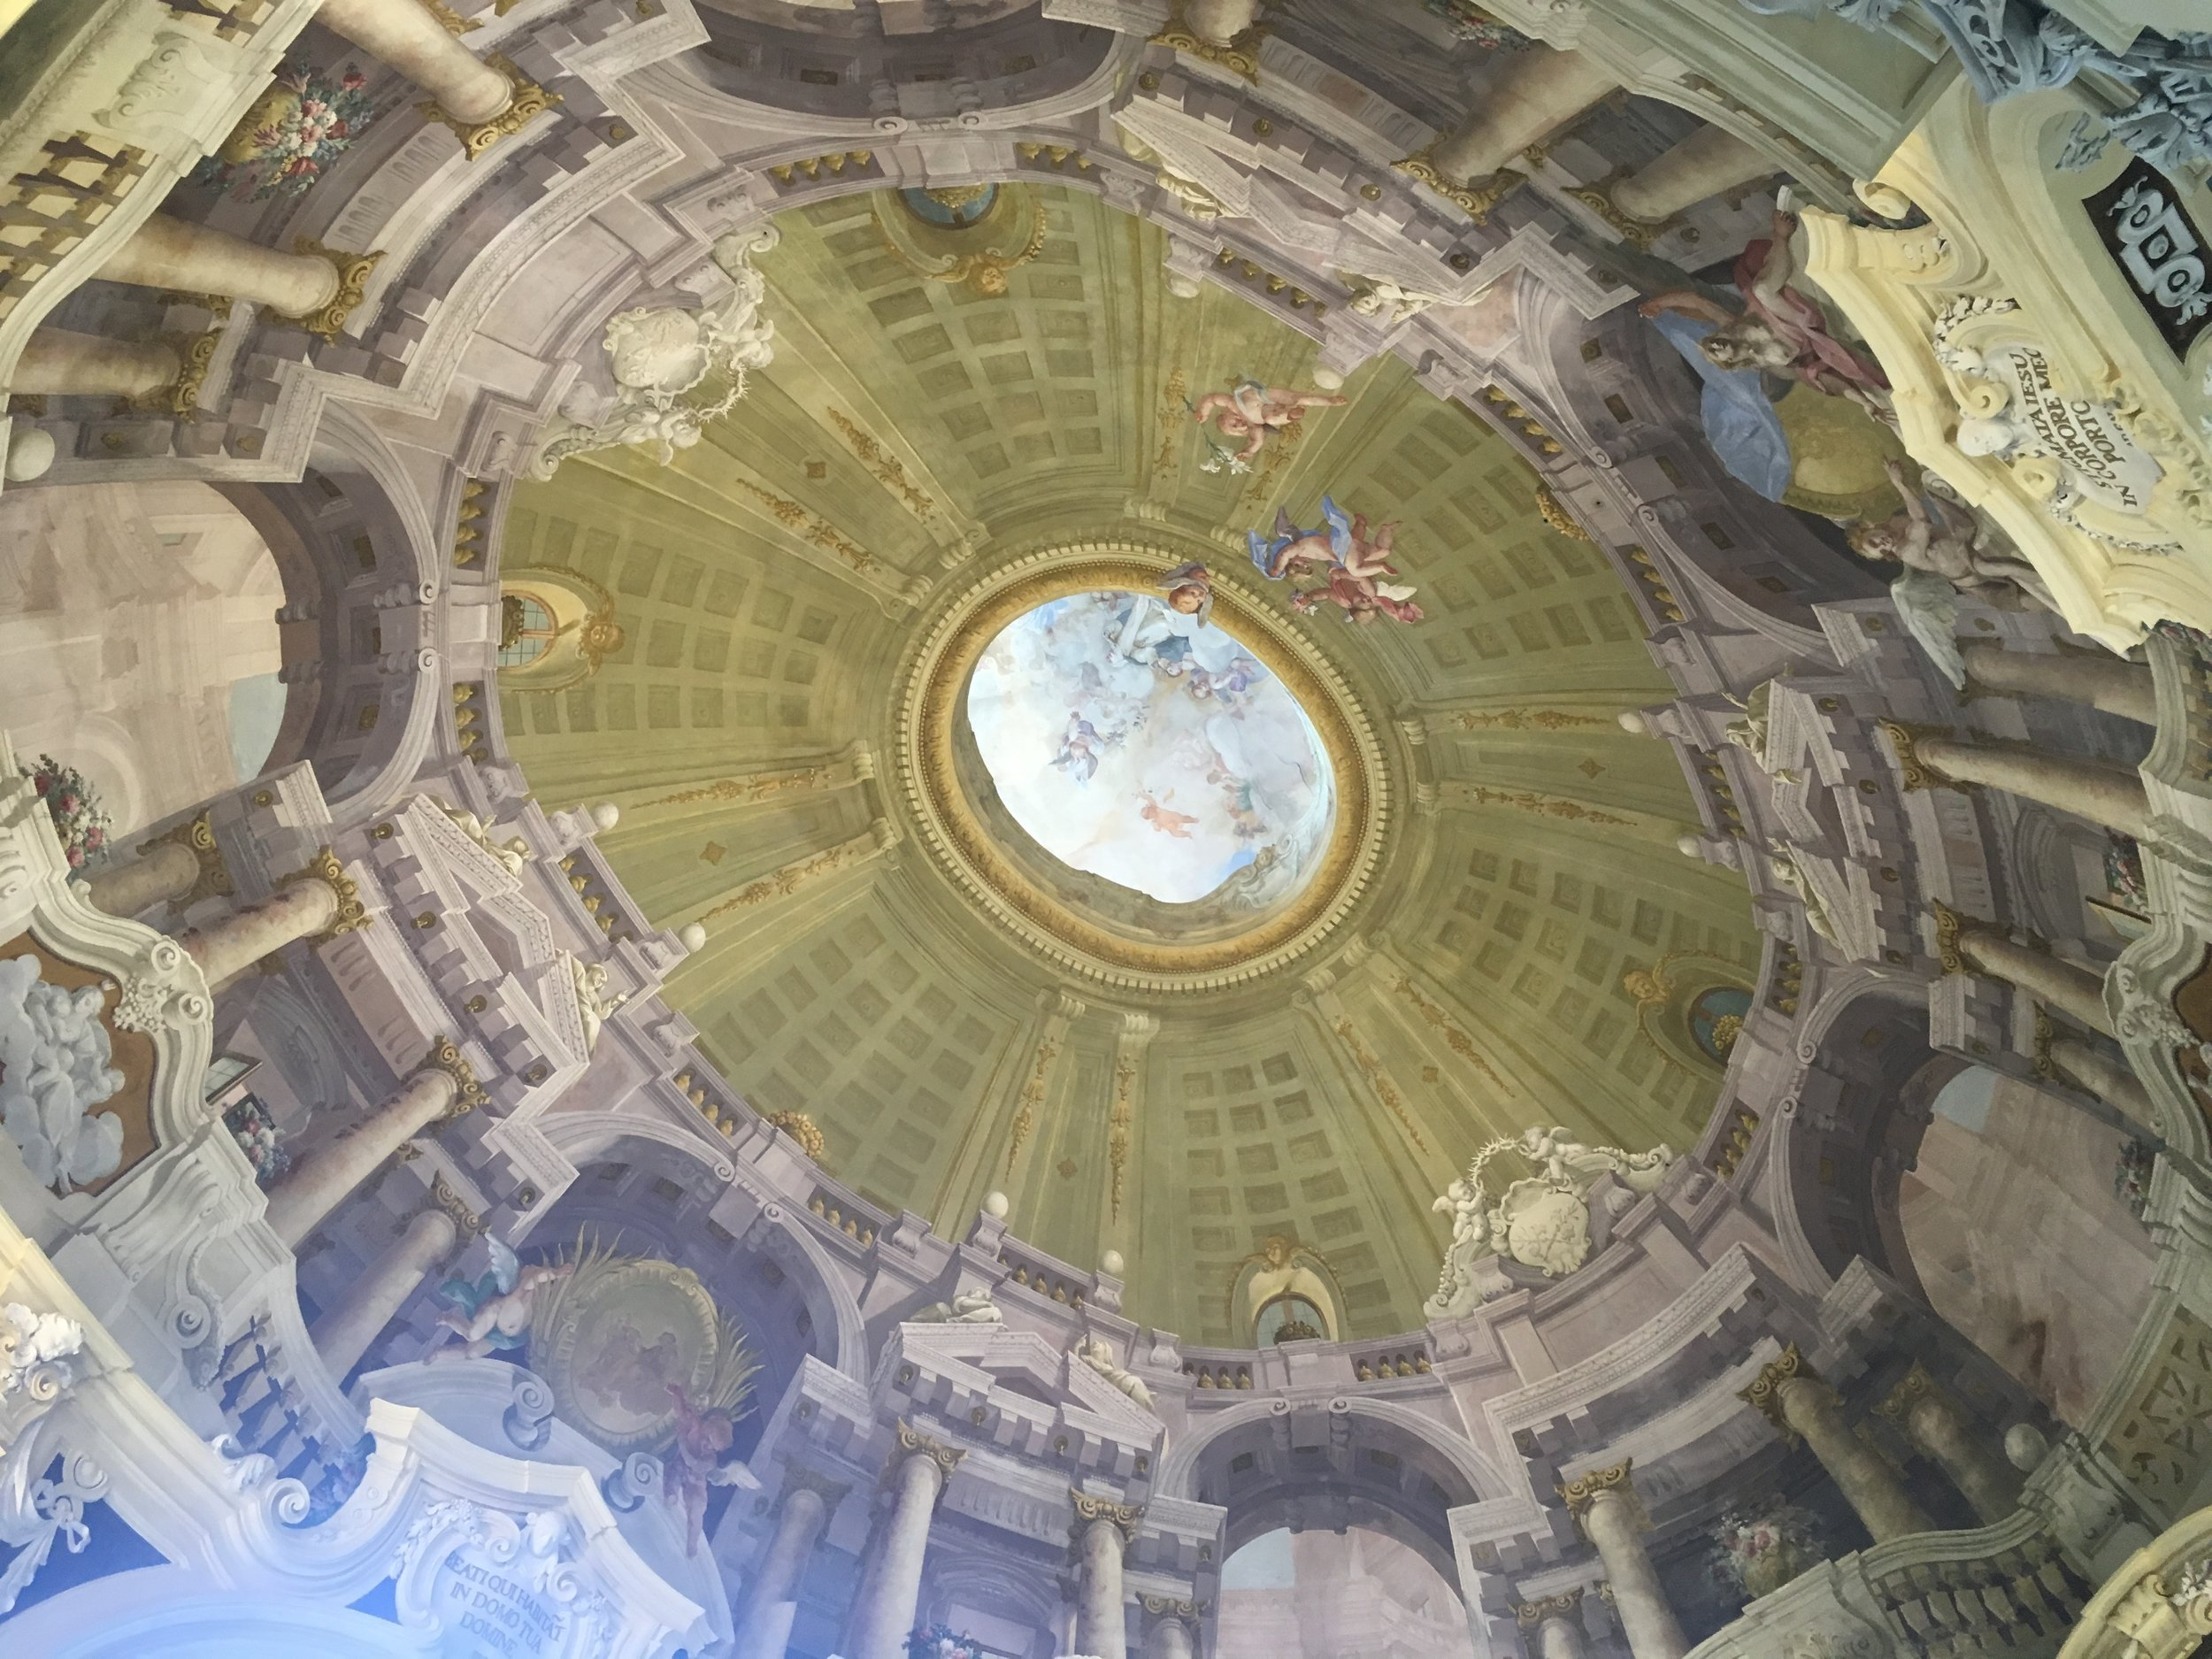 The painted dome, seen from the chapel below